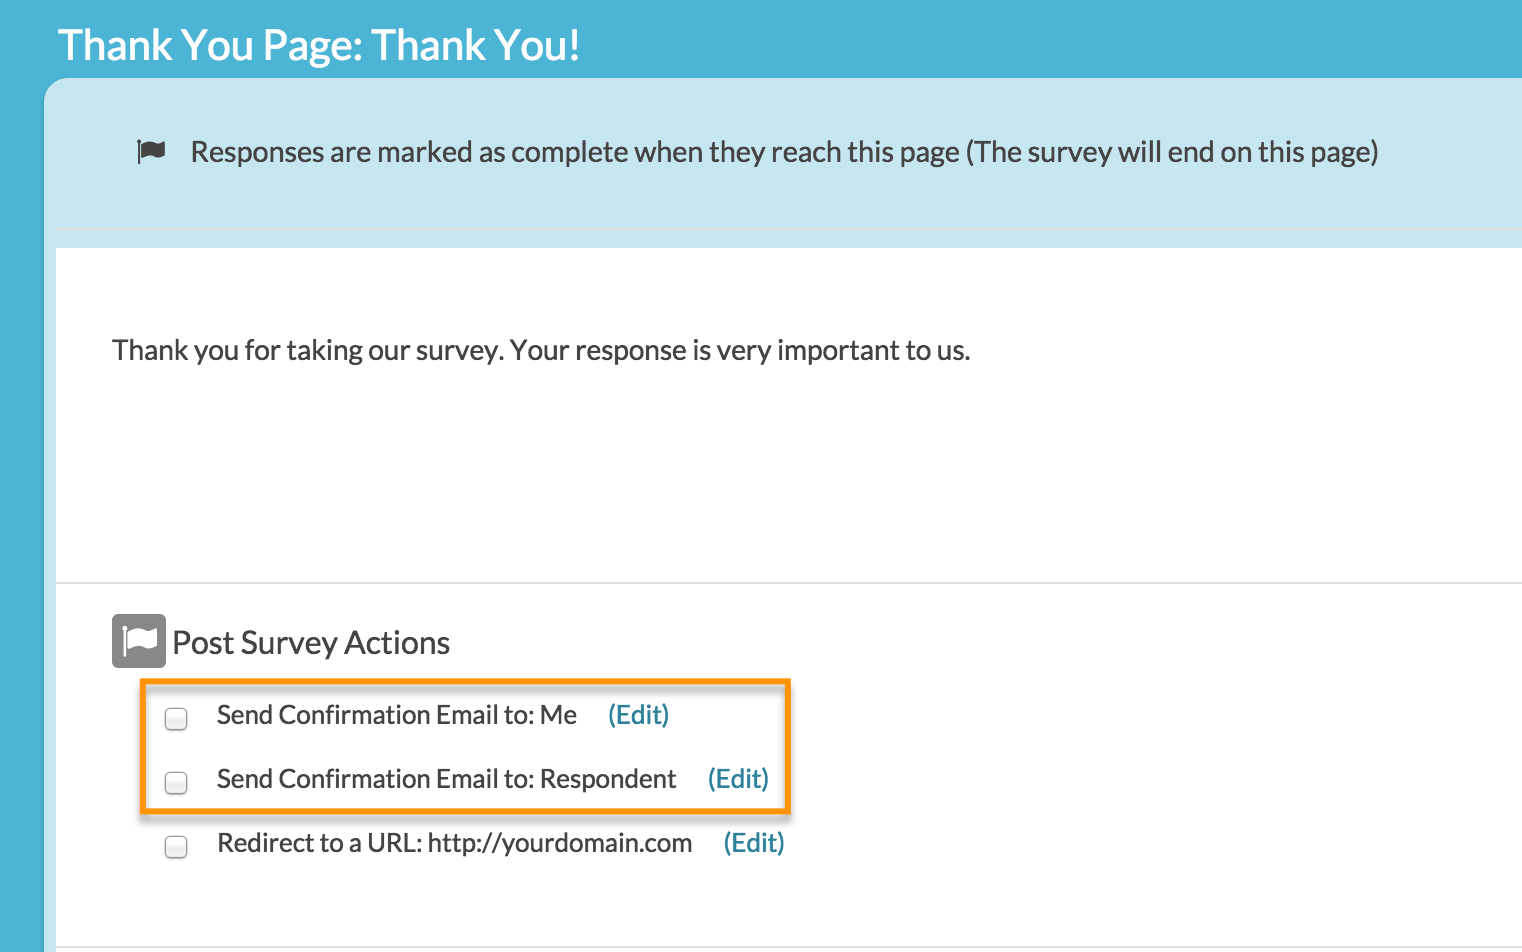 Send Email Action: Send an Autoresponse Email | SurveyGizmo | Help